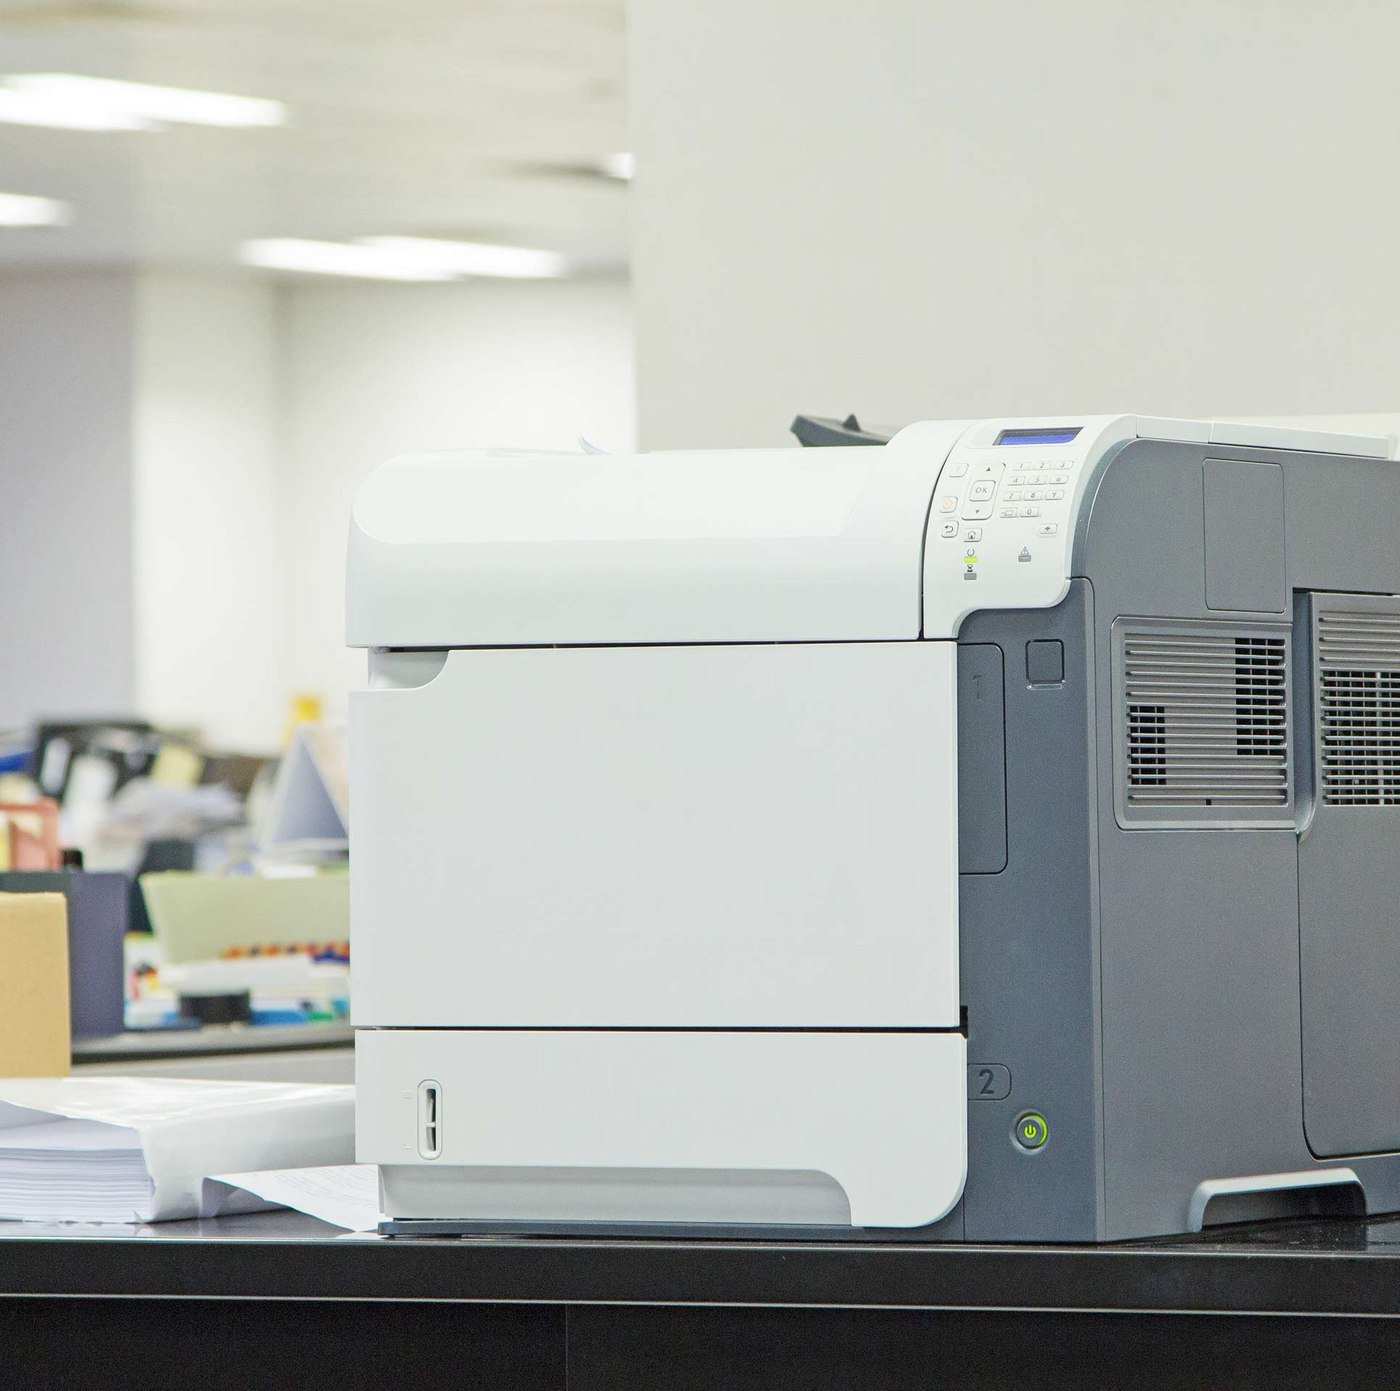 Laser Printers will get any job done right the first time - without sacrificing speed or quality.